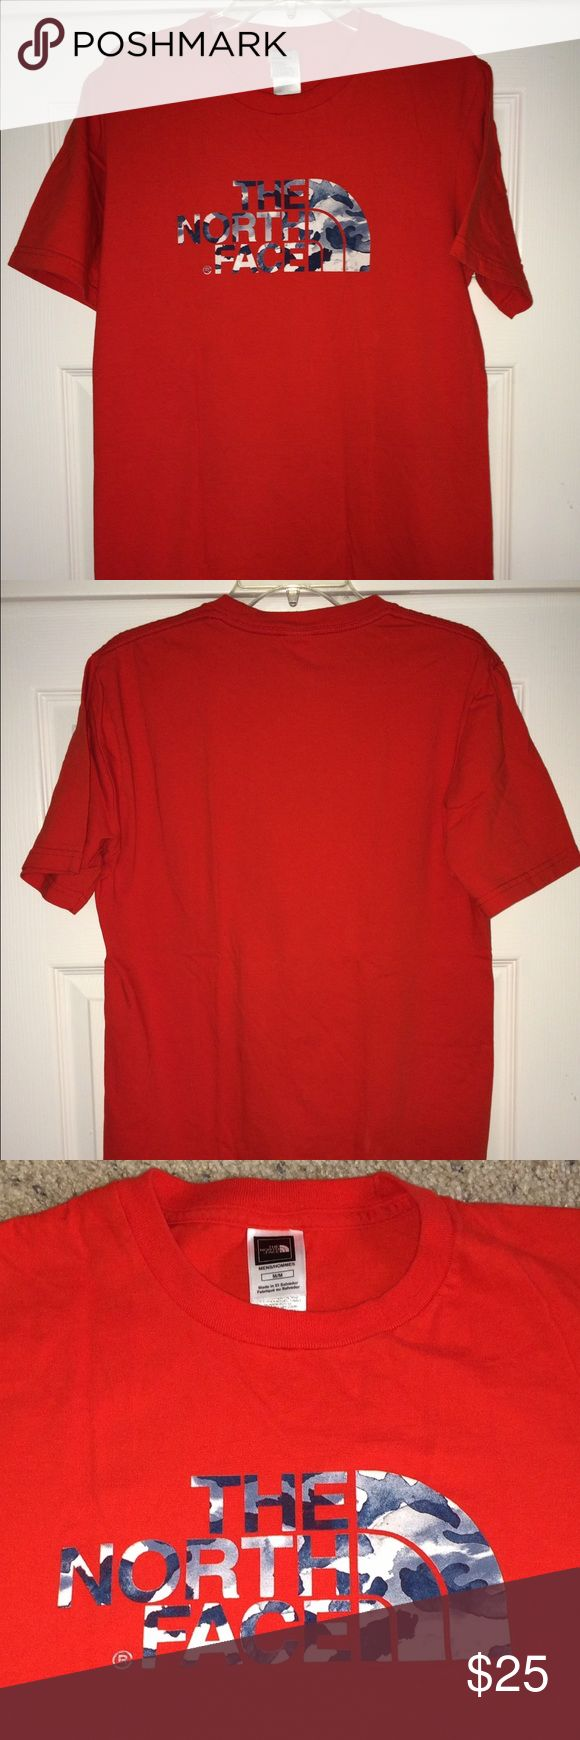 """The North Face Camo tee shirt The North Face camo tee...Men's Medium...armpit to armpit 20""""...top to bottom 28""""....Good used condition...Please see all photos and read description before purchase! The North Face Shirts Tees - Short Sleeve"""